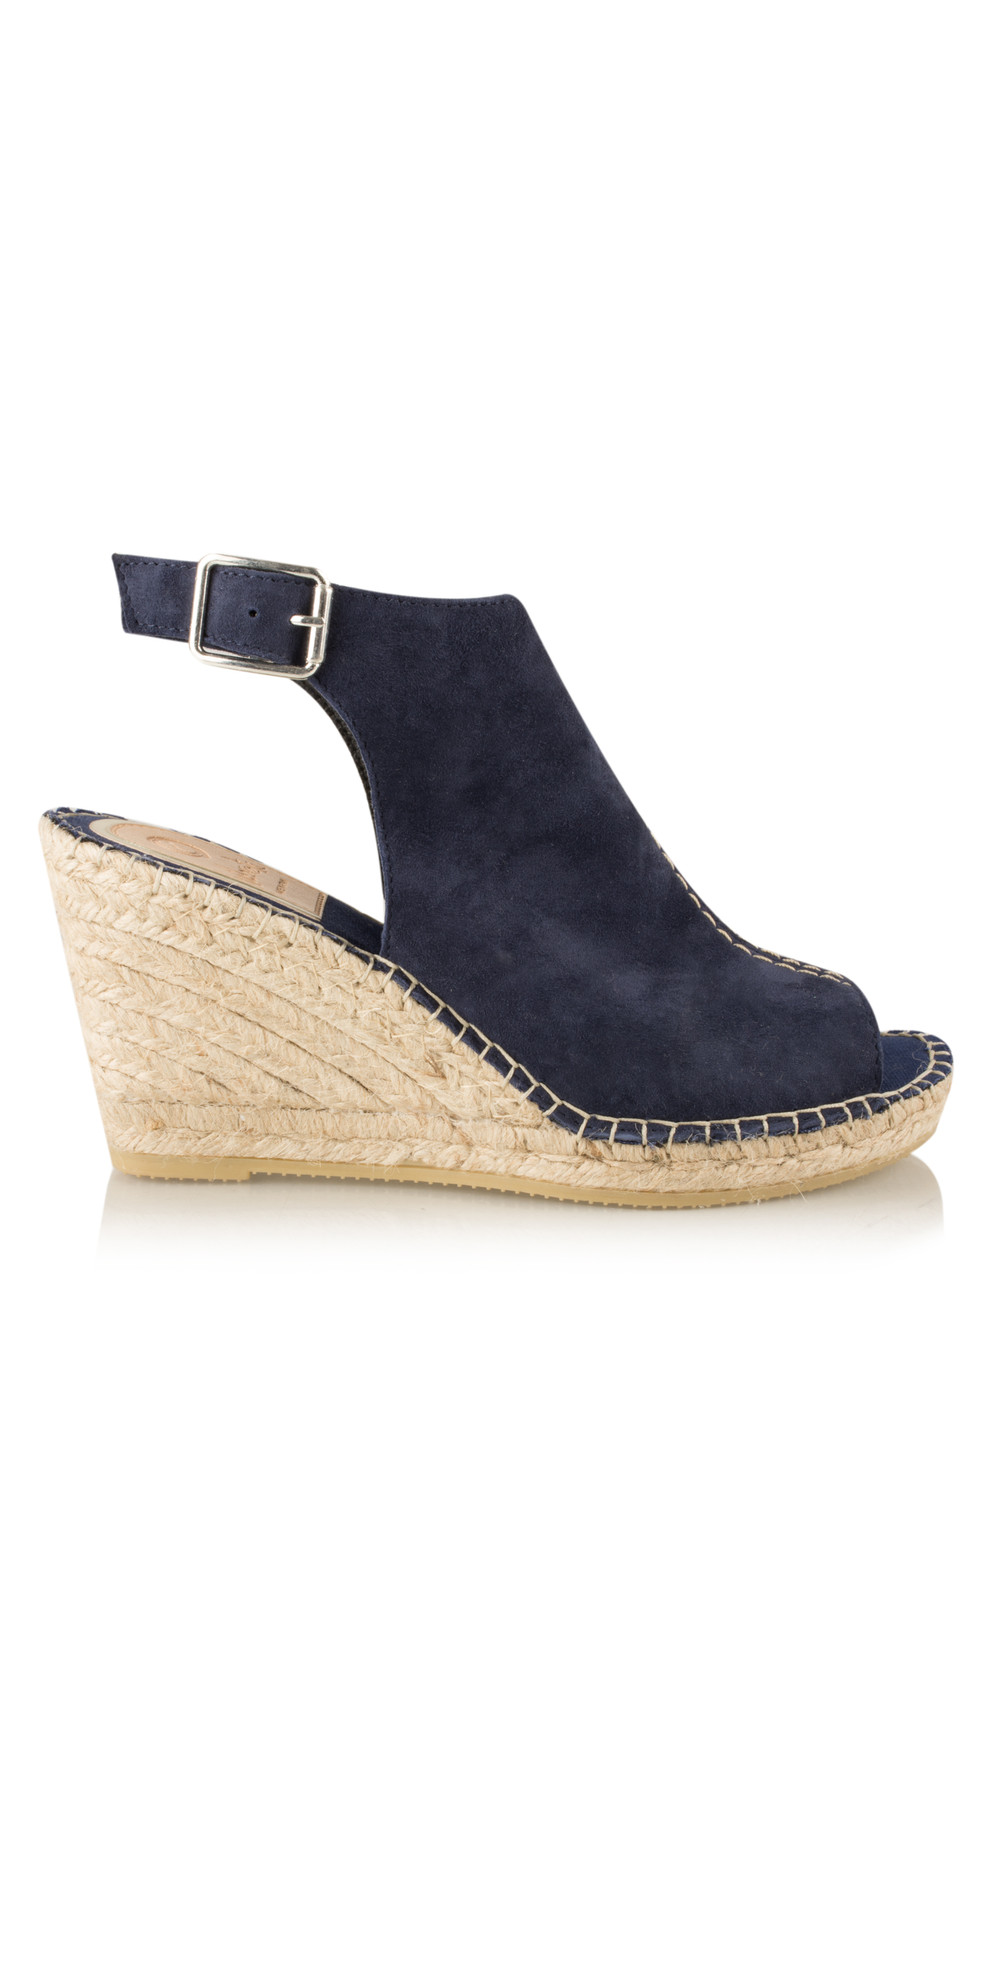 c700fbb6a8d Marino Navy Cipres Mule Wedge Espadrille